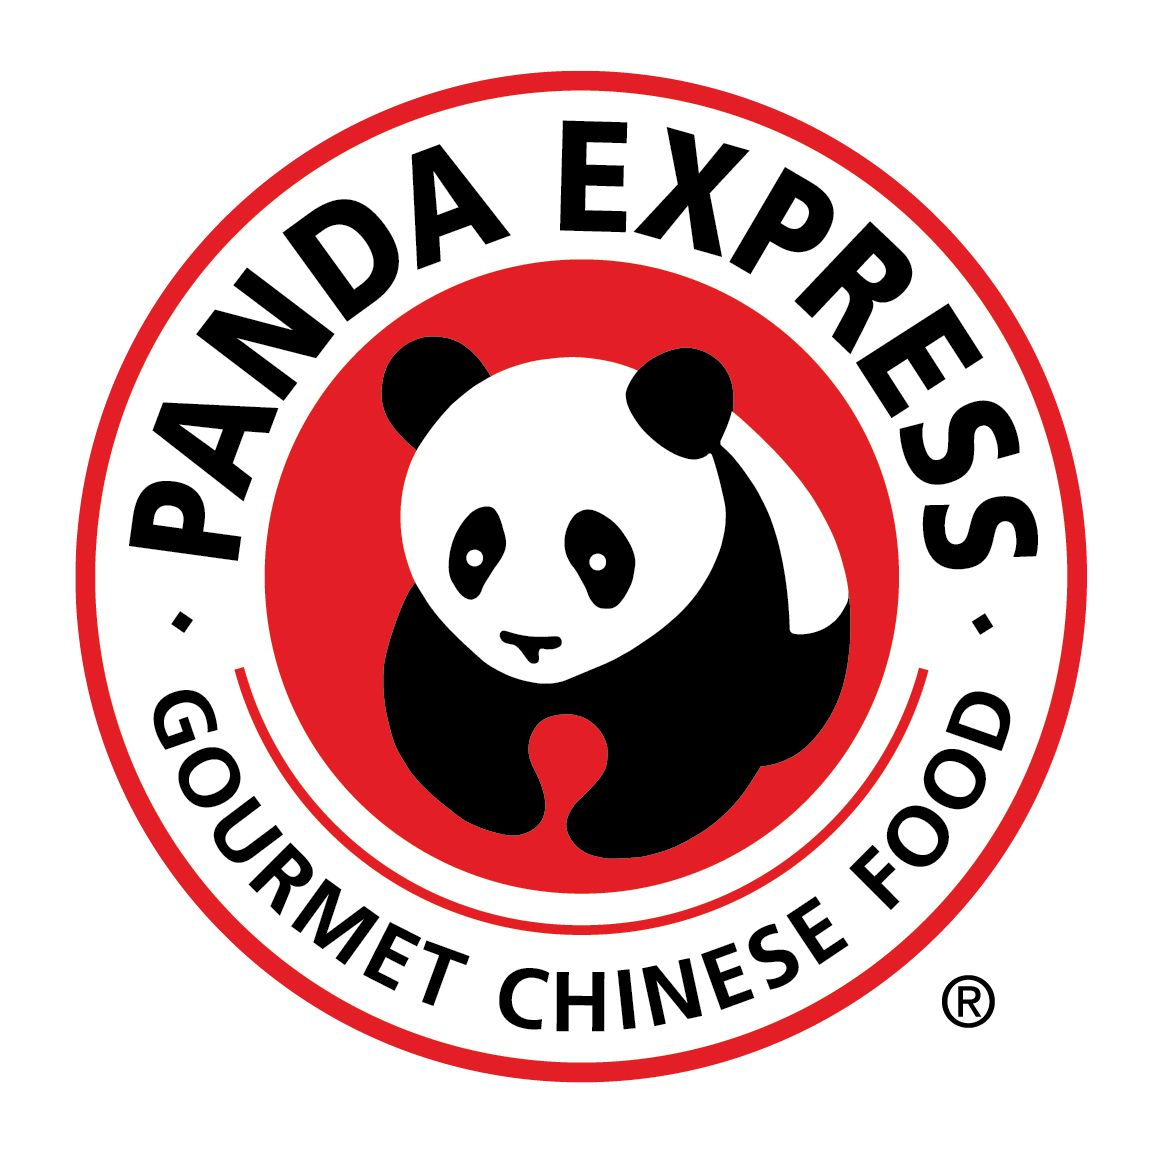 Panda Express Is The Nation S Leader In Asian Dining Experiences With Close To 1300 Locations Panda Panda Express Orange Chicken Panda Express Orange Chicken